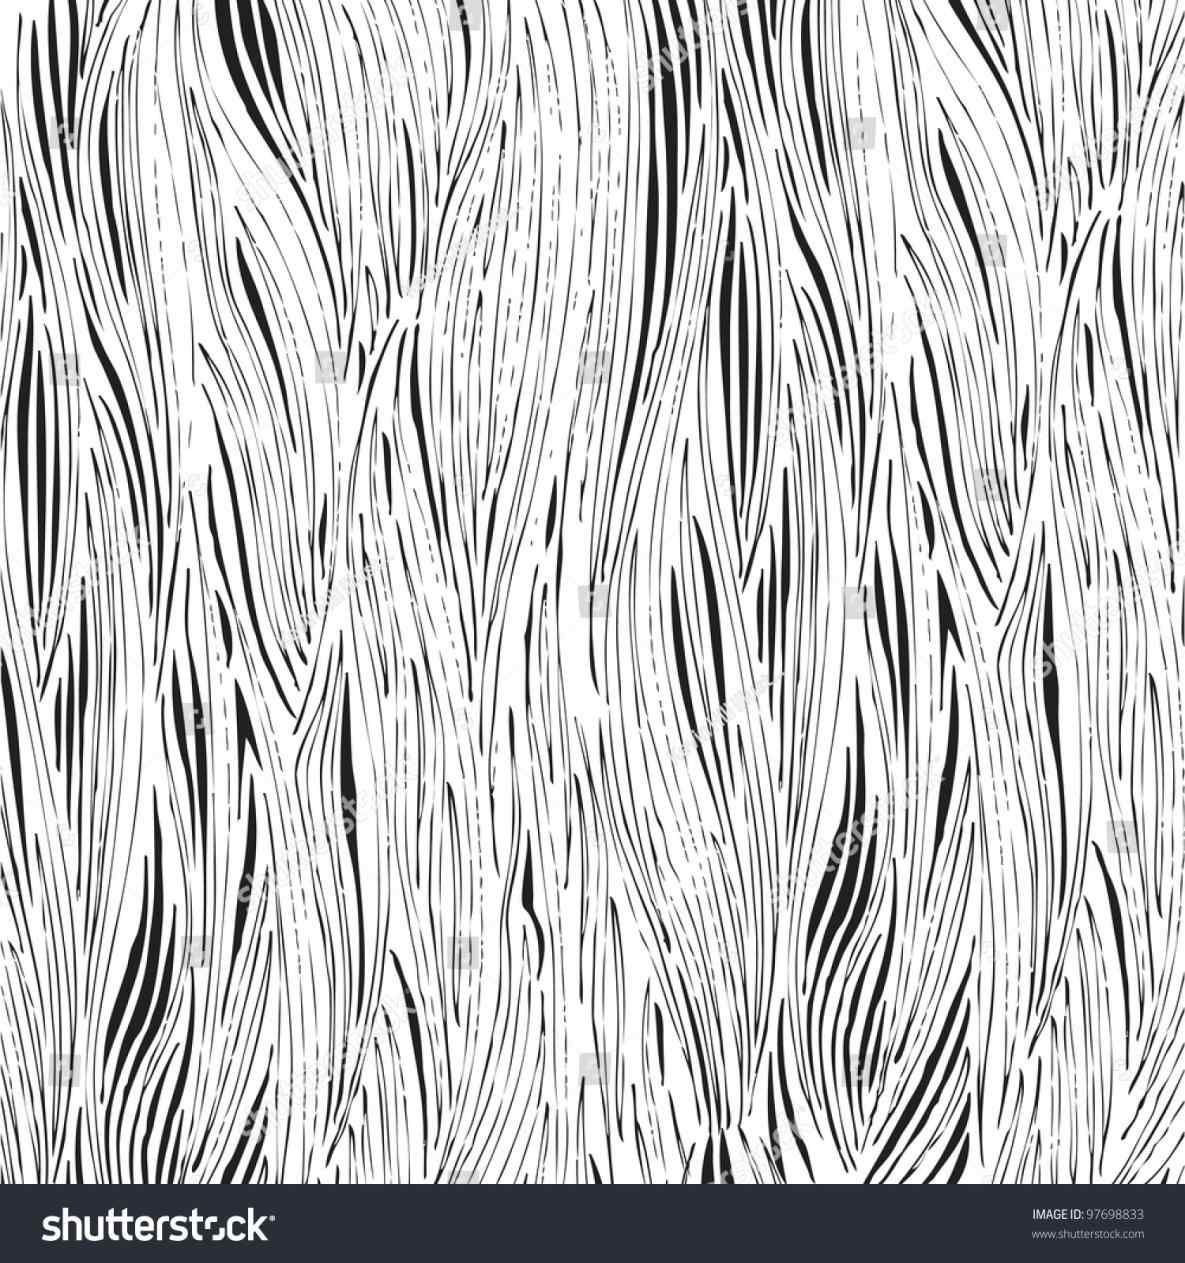 1185x1263 Home Wood Grain Texture Vector Black And White Design Jobs S